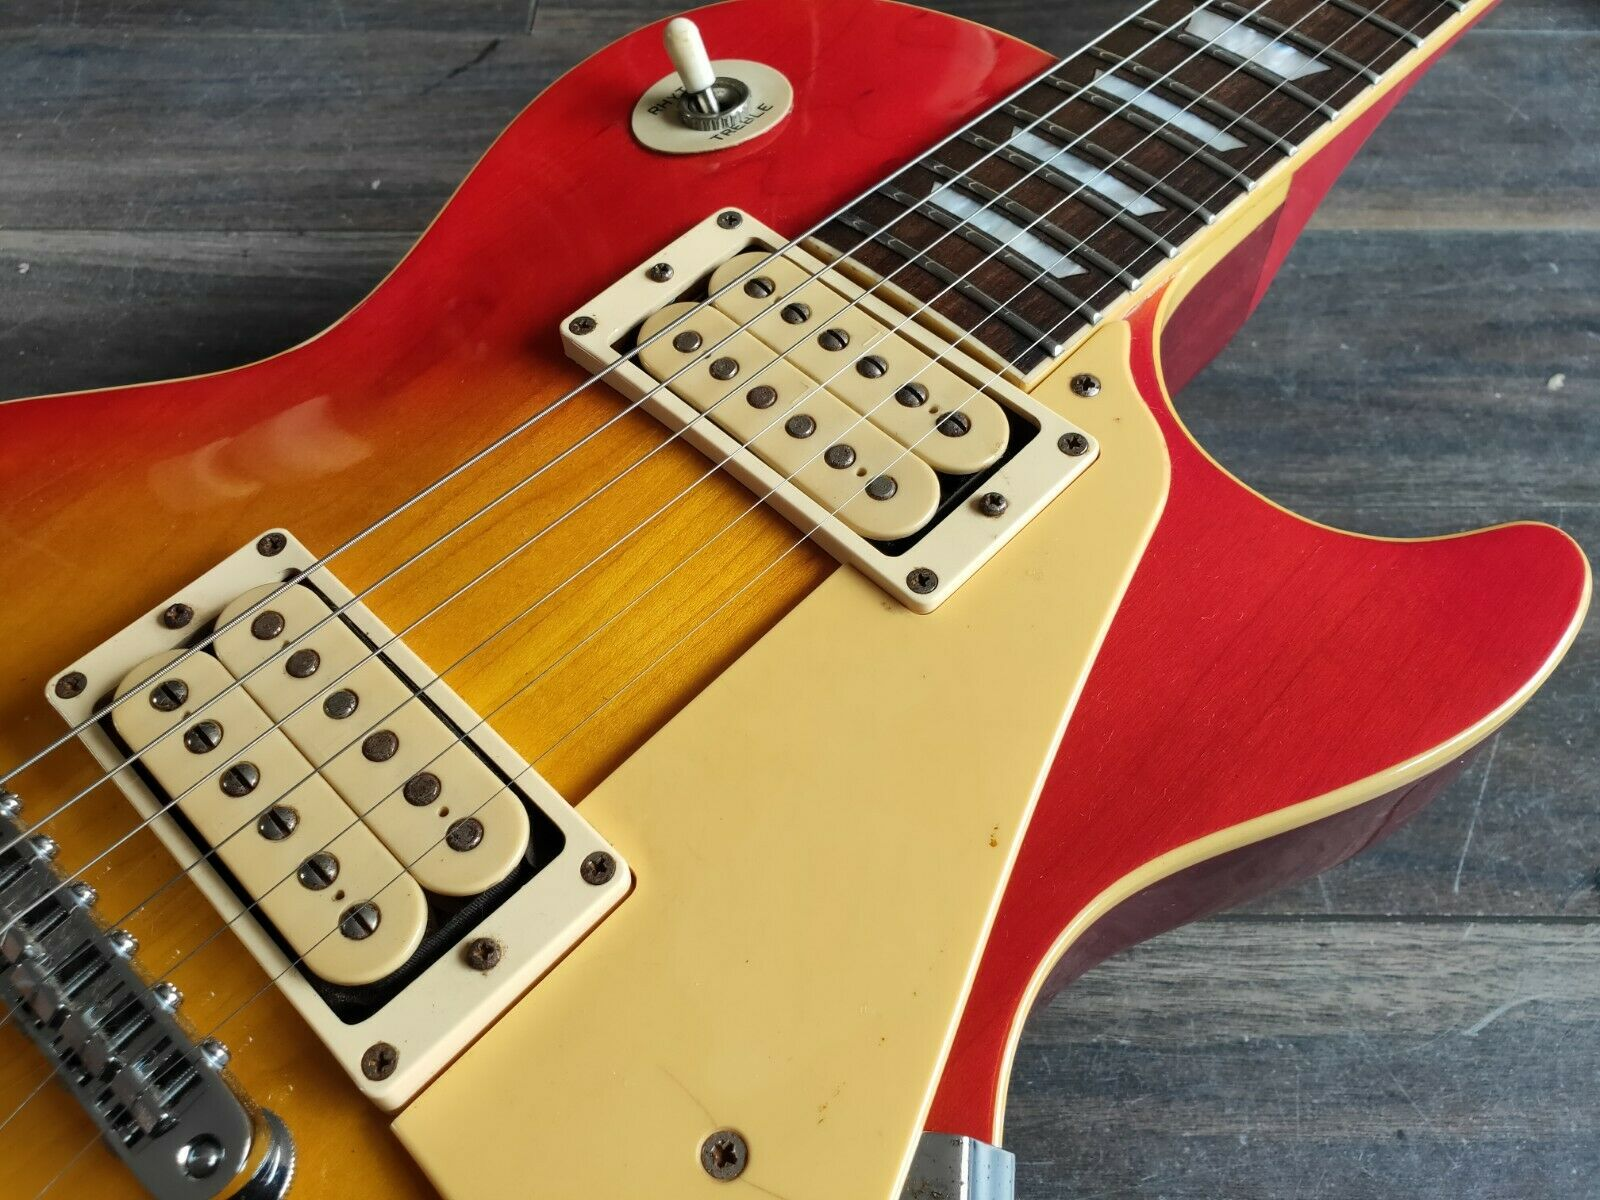 1980 Aria Pro II Japan LS-400 Les Paul Standard (Cherry Sunburst)